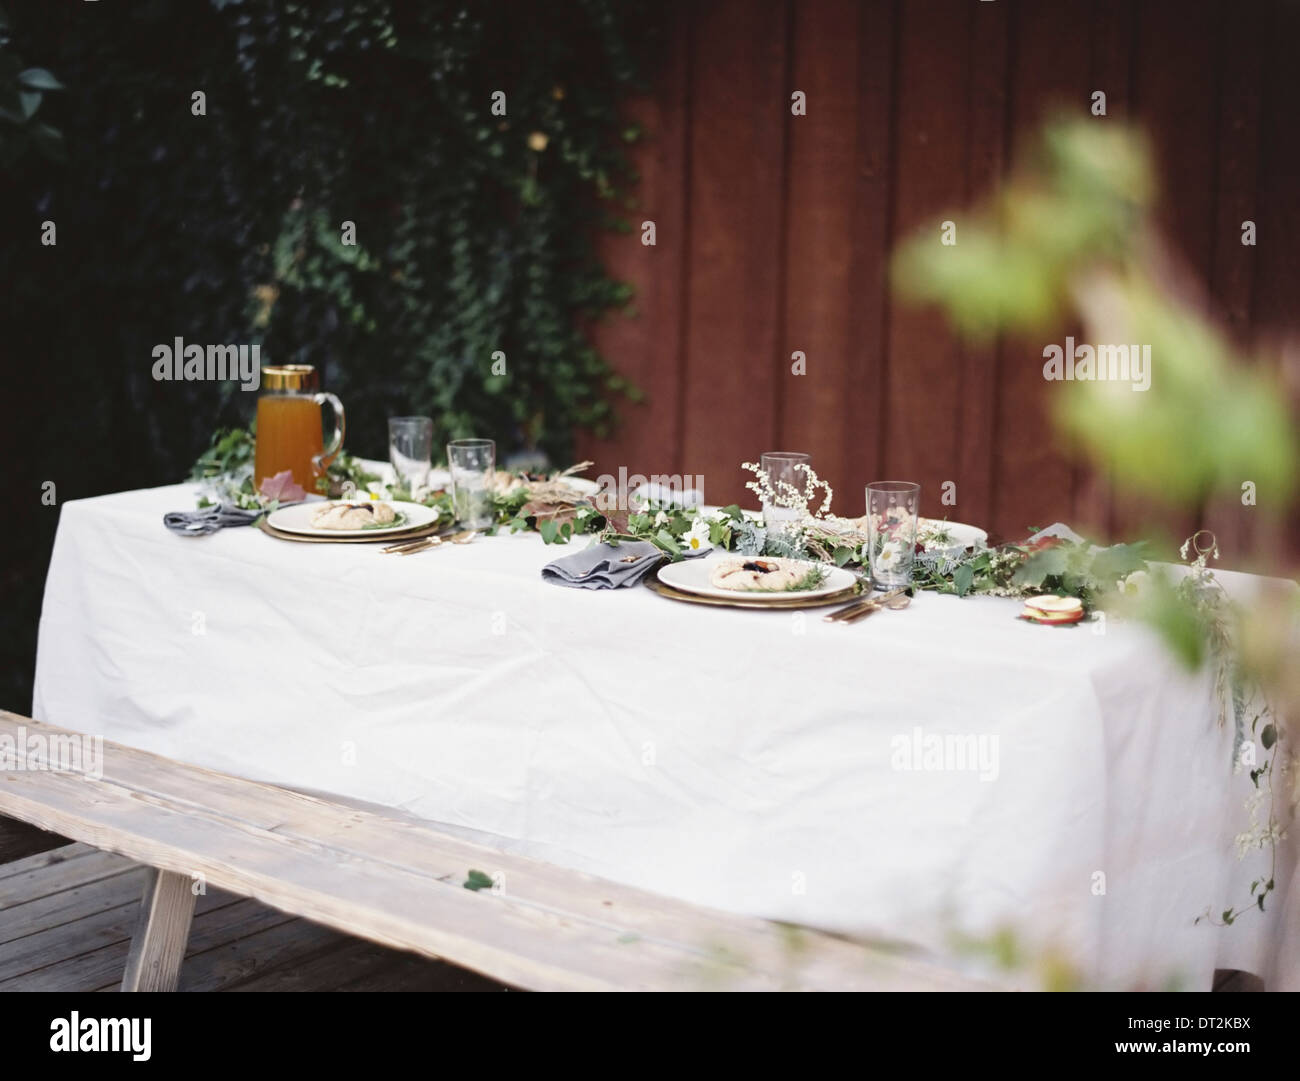 A Table Laid For A Special Meal Place Settings With Plates And Cutlery  Glasses A White Table Cloth And Bench Seat Plates Of Food